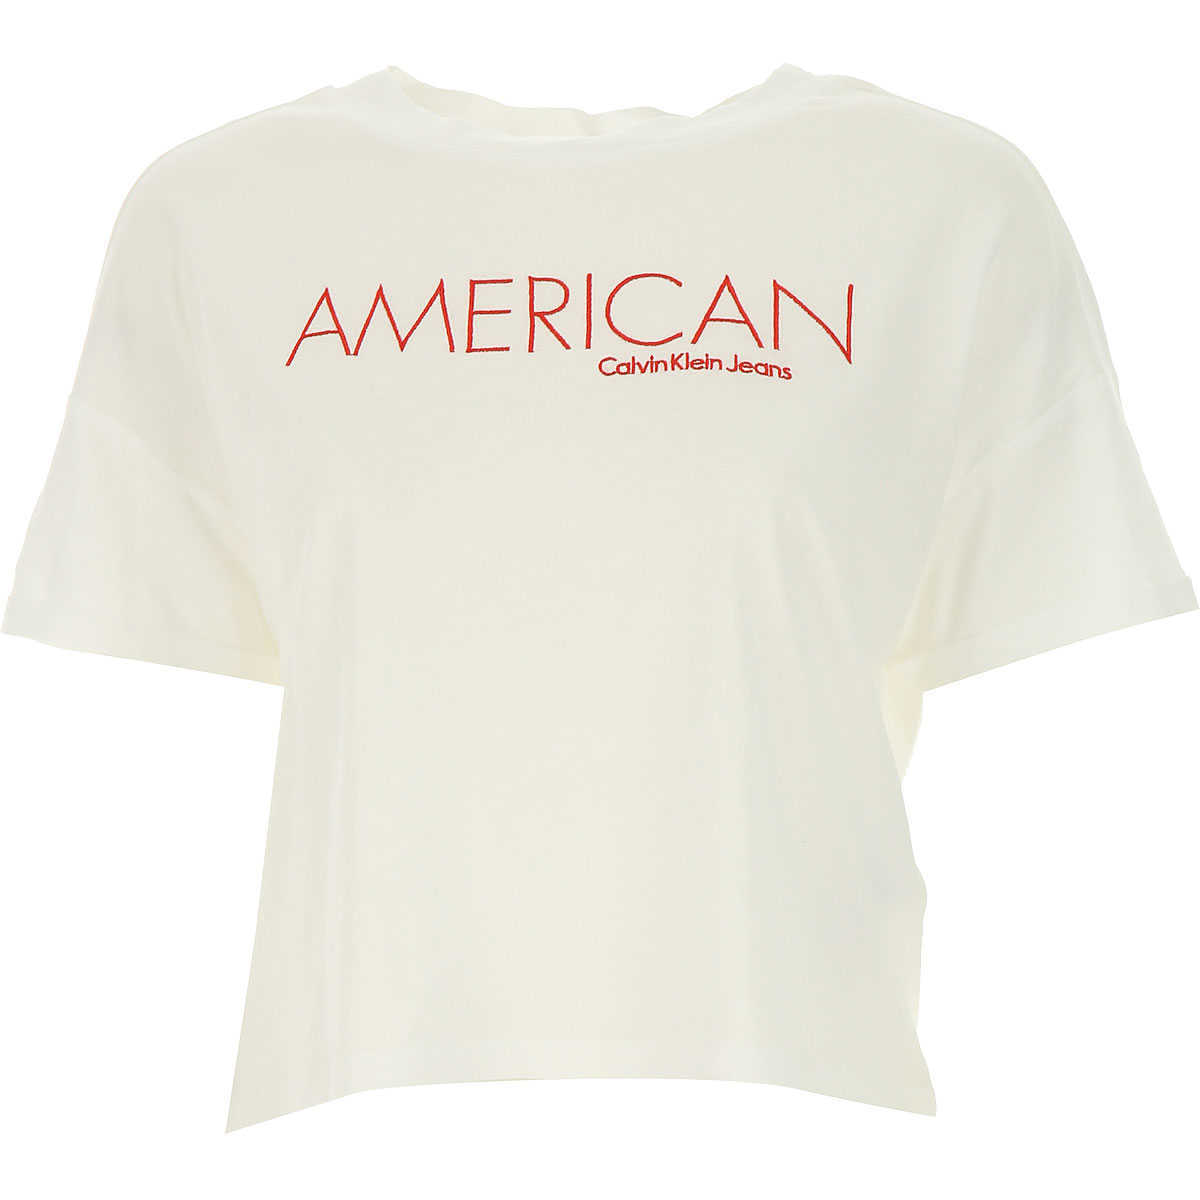 Calvin Klein T-Shirt for Women On Sale in Outlet White DK - GOOFASH - Womens T-SHIRTS